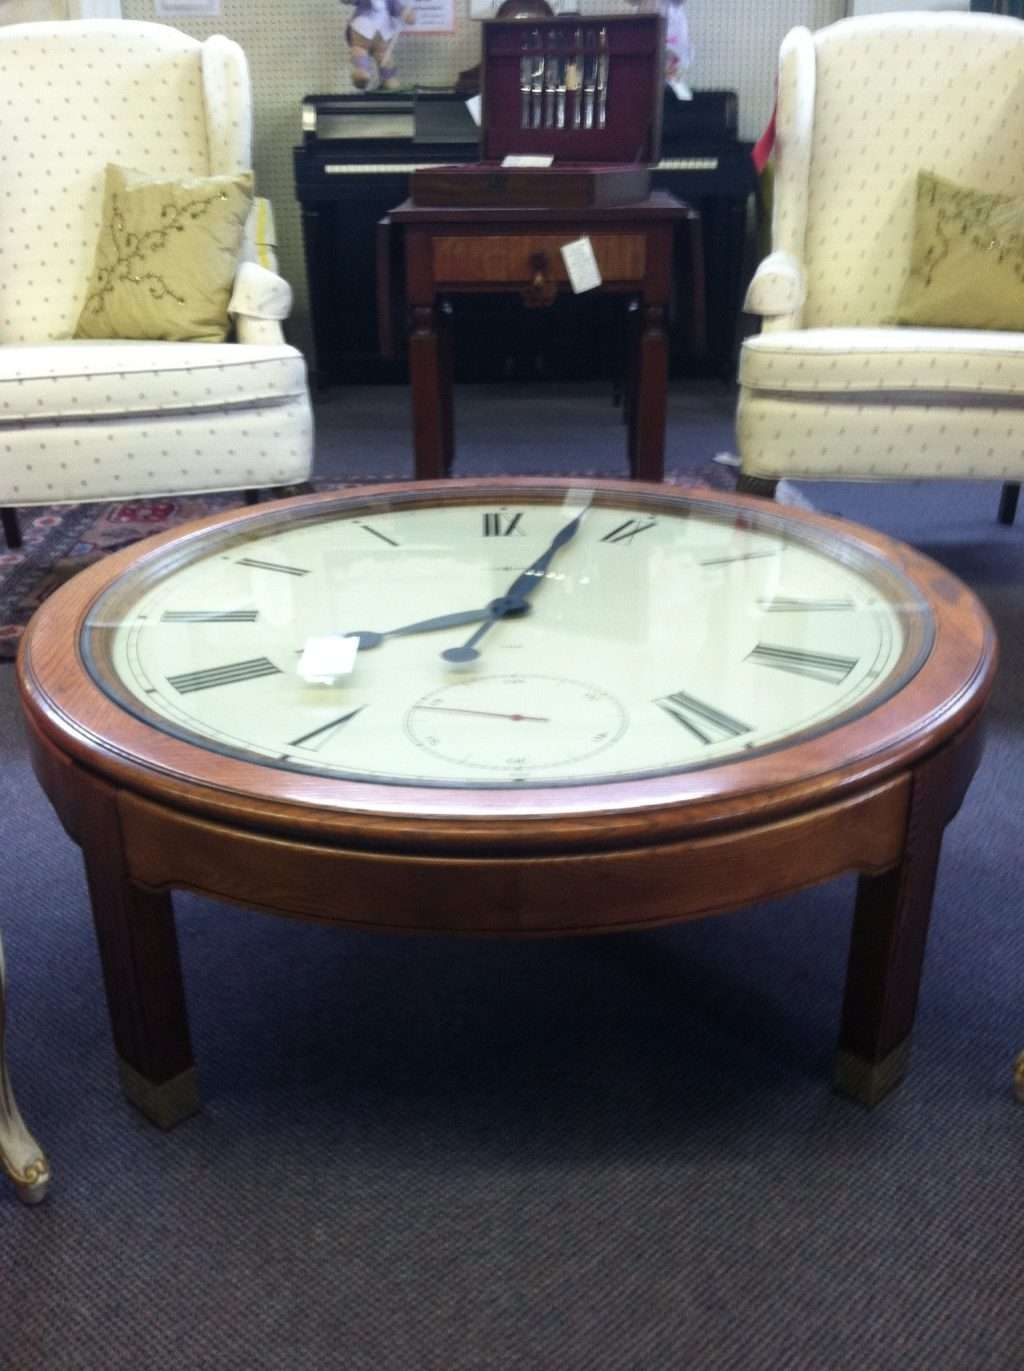 Most Recently Released Clock Coffee Tables Round Shaped In Home ~ Clock Coffee Table For Sale Round With Oval Ridgeway (View 8 of 20)